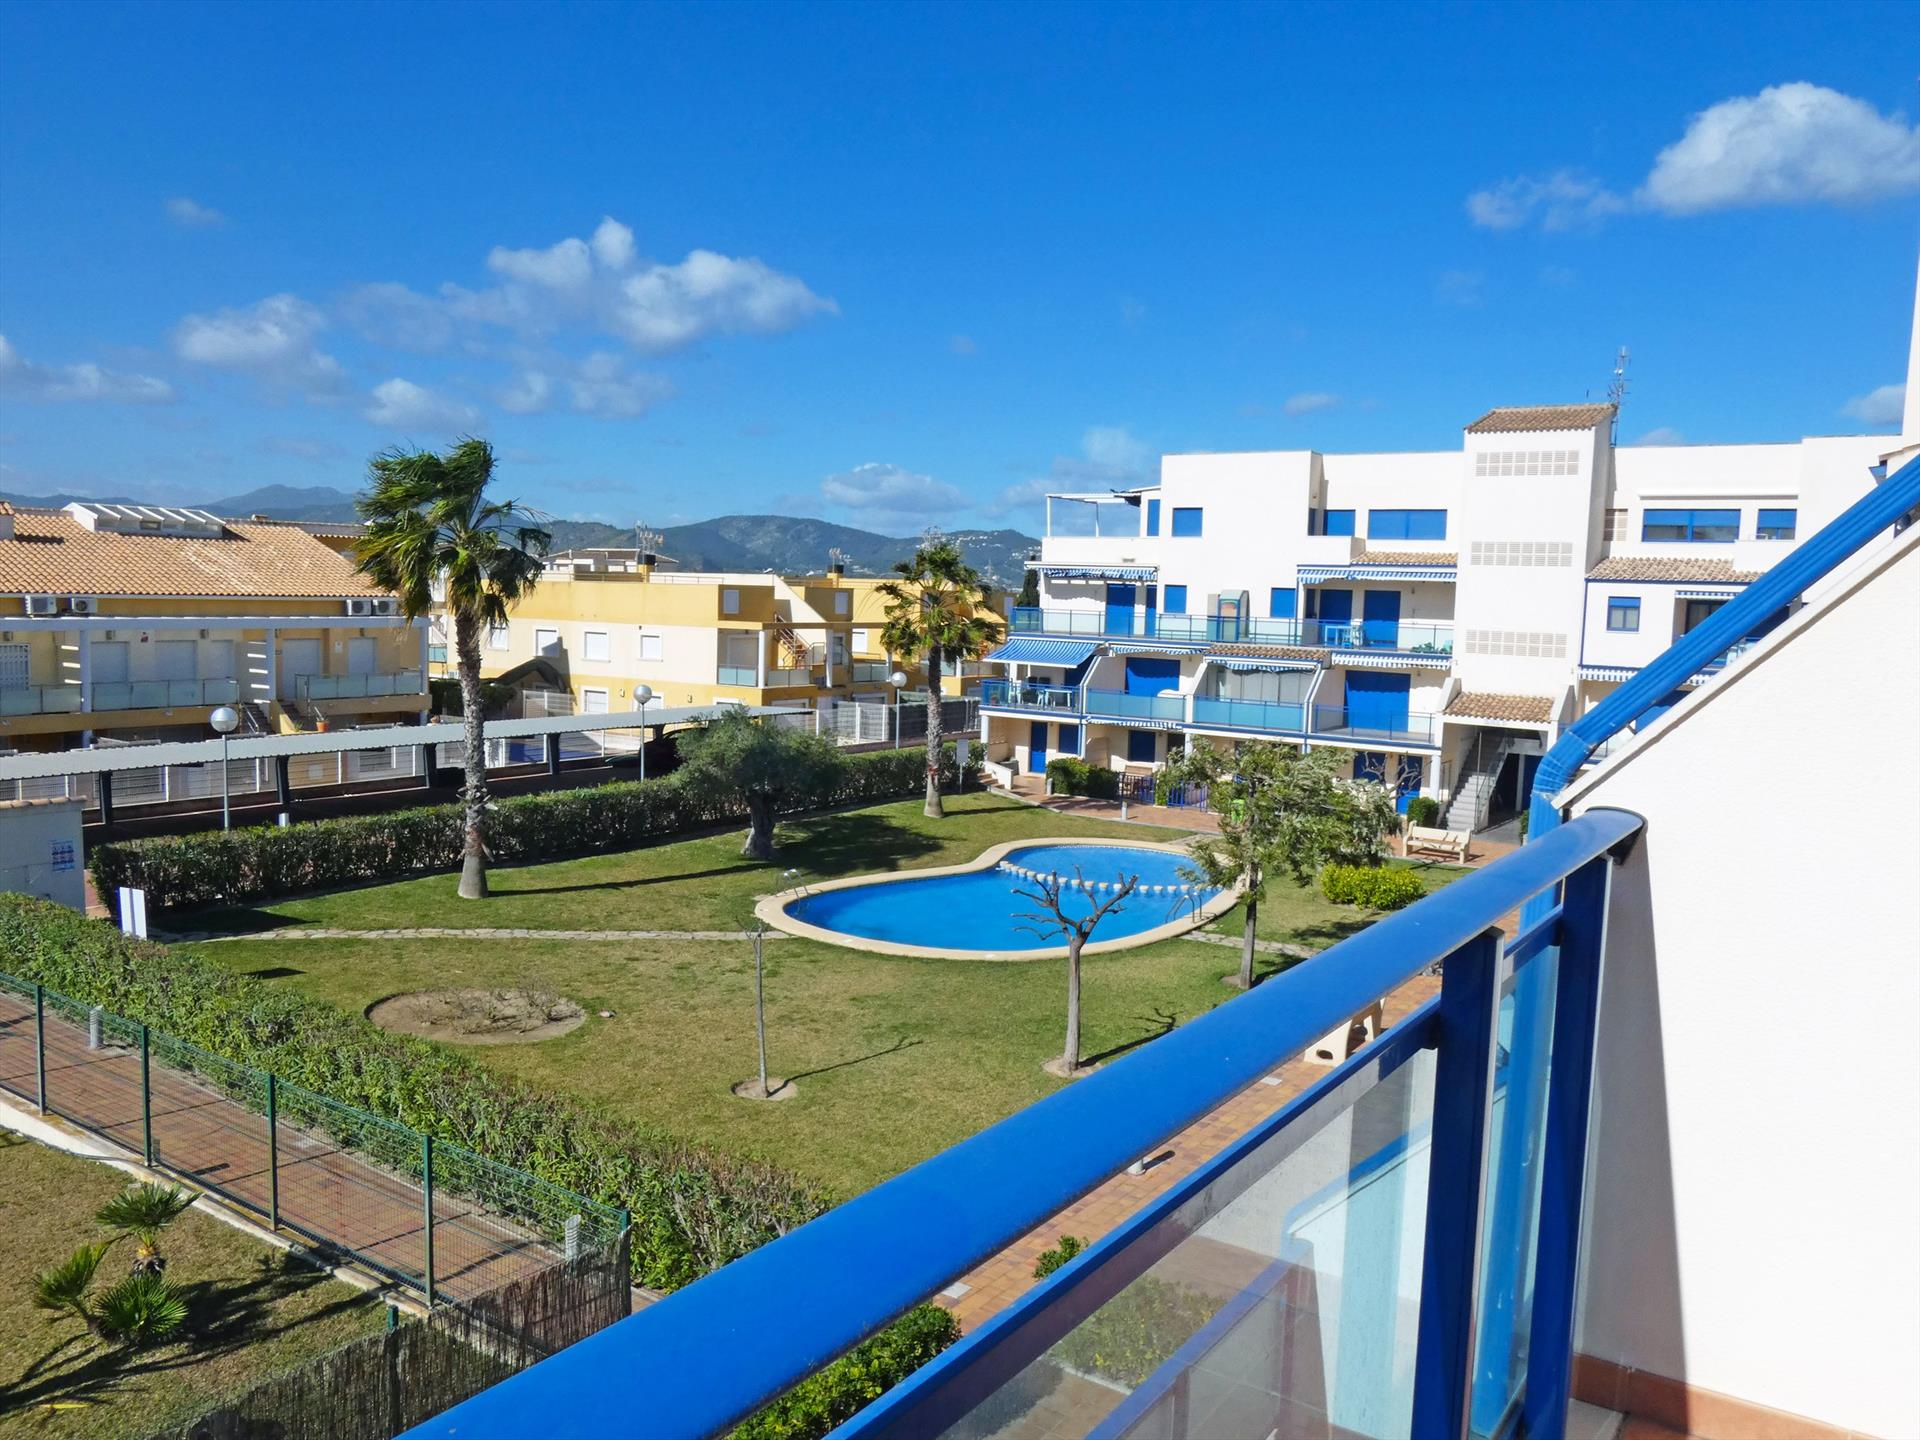 AP305 Marina Golf Playa Rabdells, Classic and nice apartment in Oliva, on the Costa Blanca, Spain  with communal pool for 4 persons.....